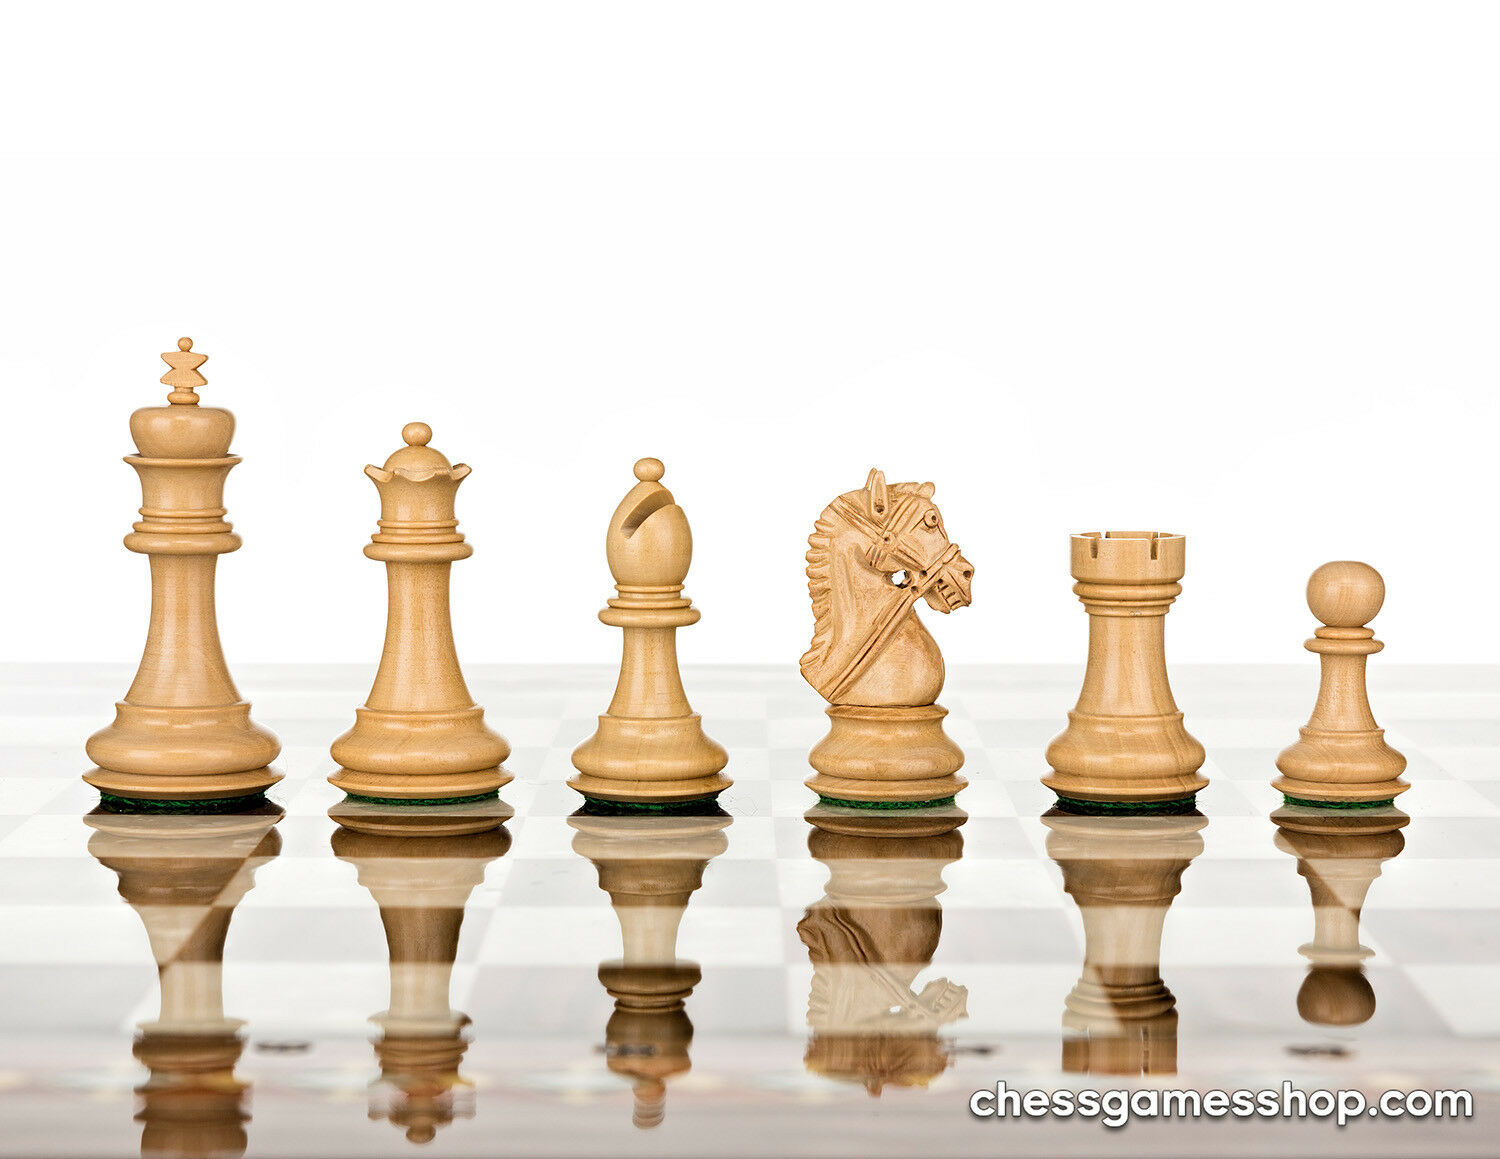 Luxury handmade wooden chessmen - chess pieces - weighted, felted - extra queens